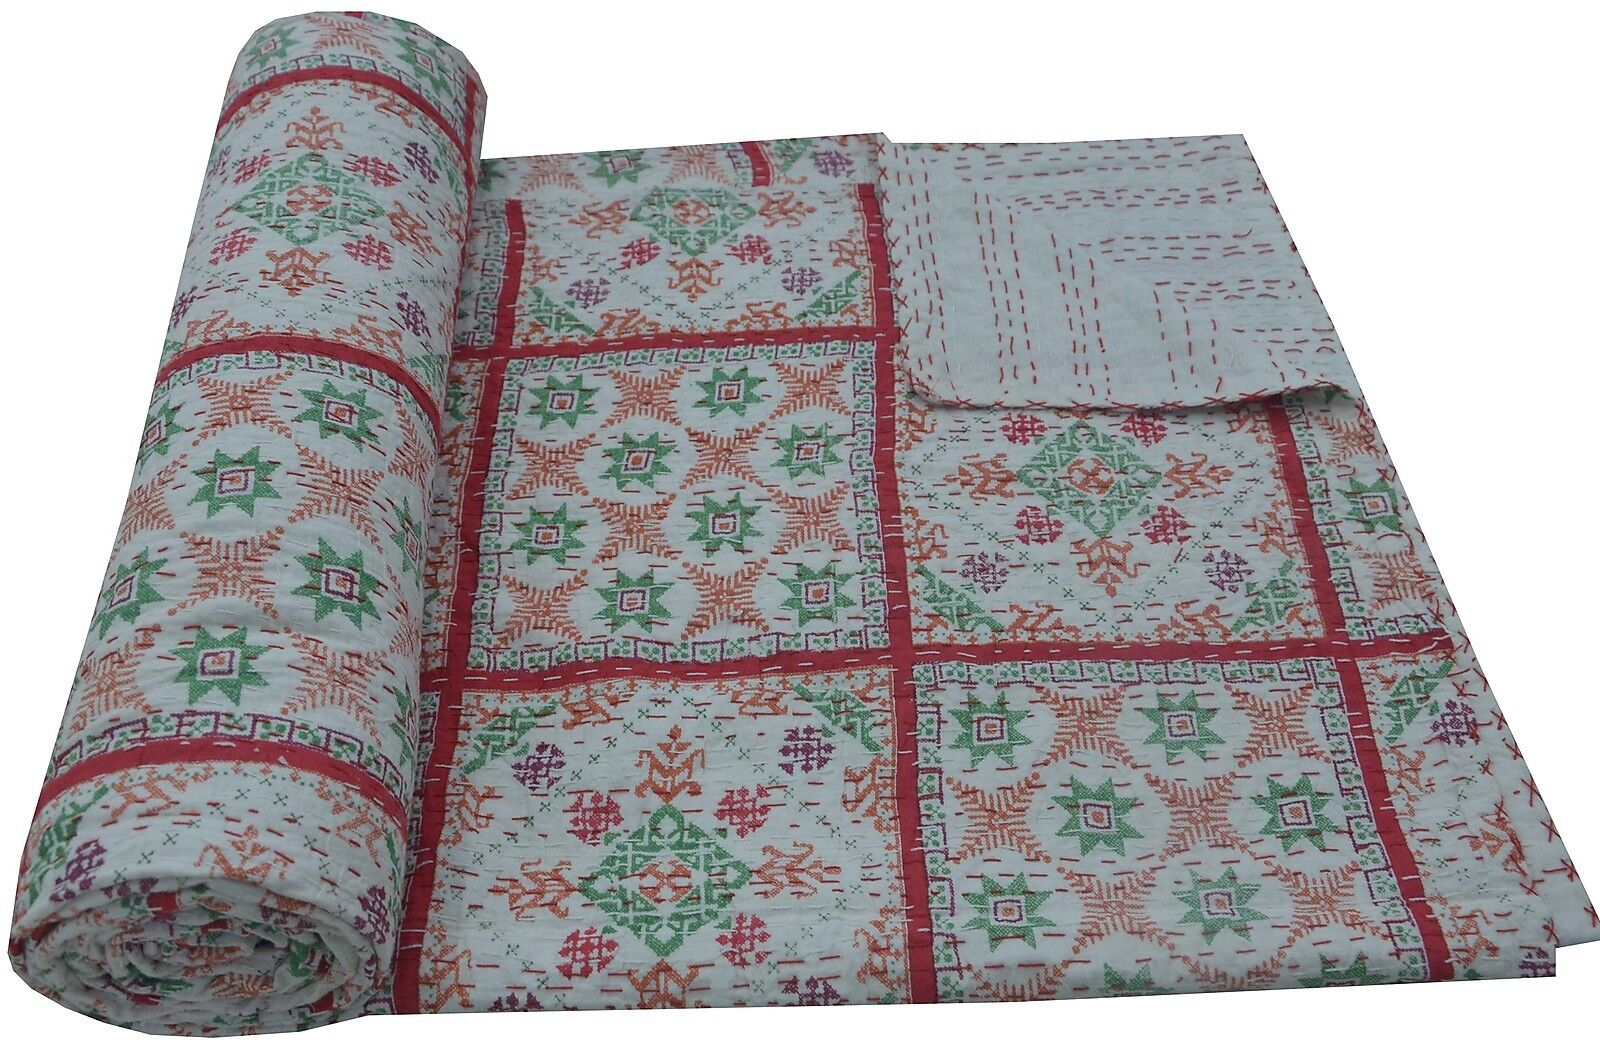 Cotton Kantha Bed Cover Indian Bedspread Throw Queen Größe Quilt Reversible Ralli